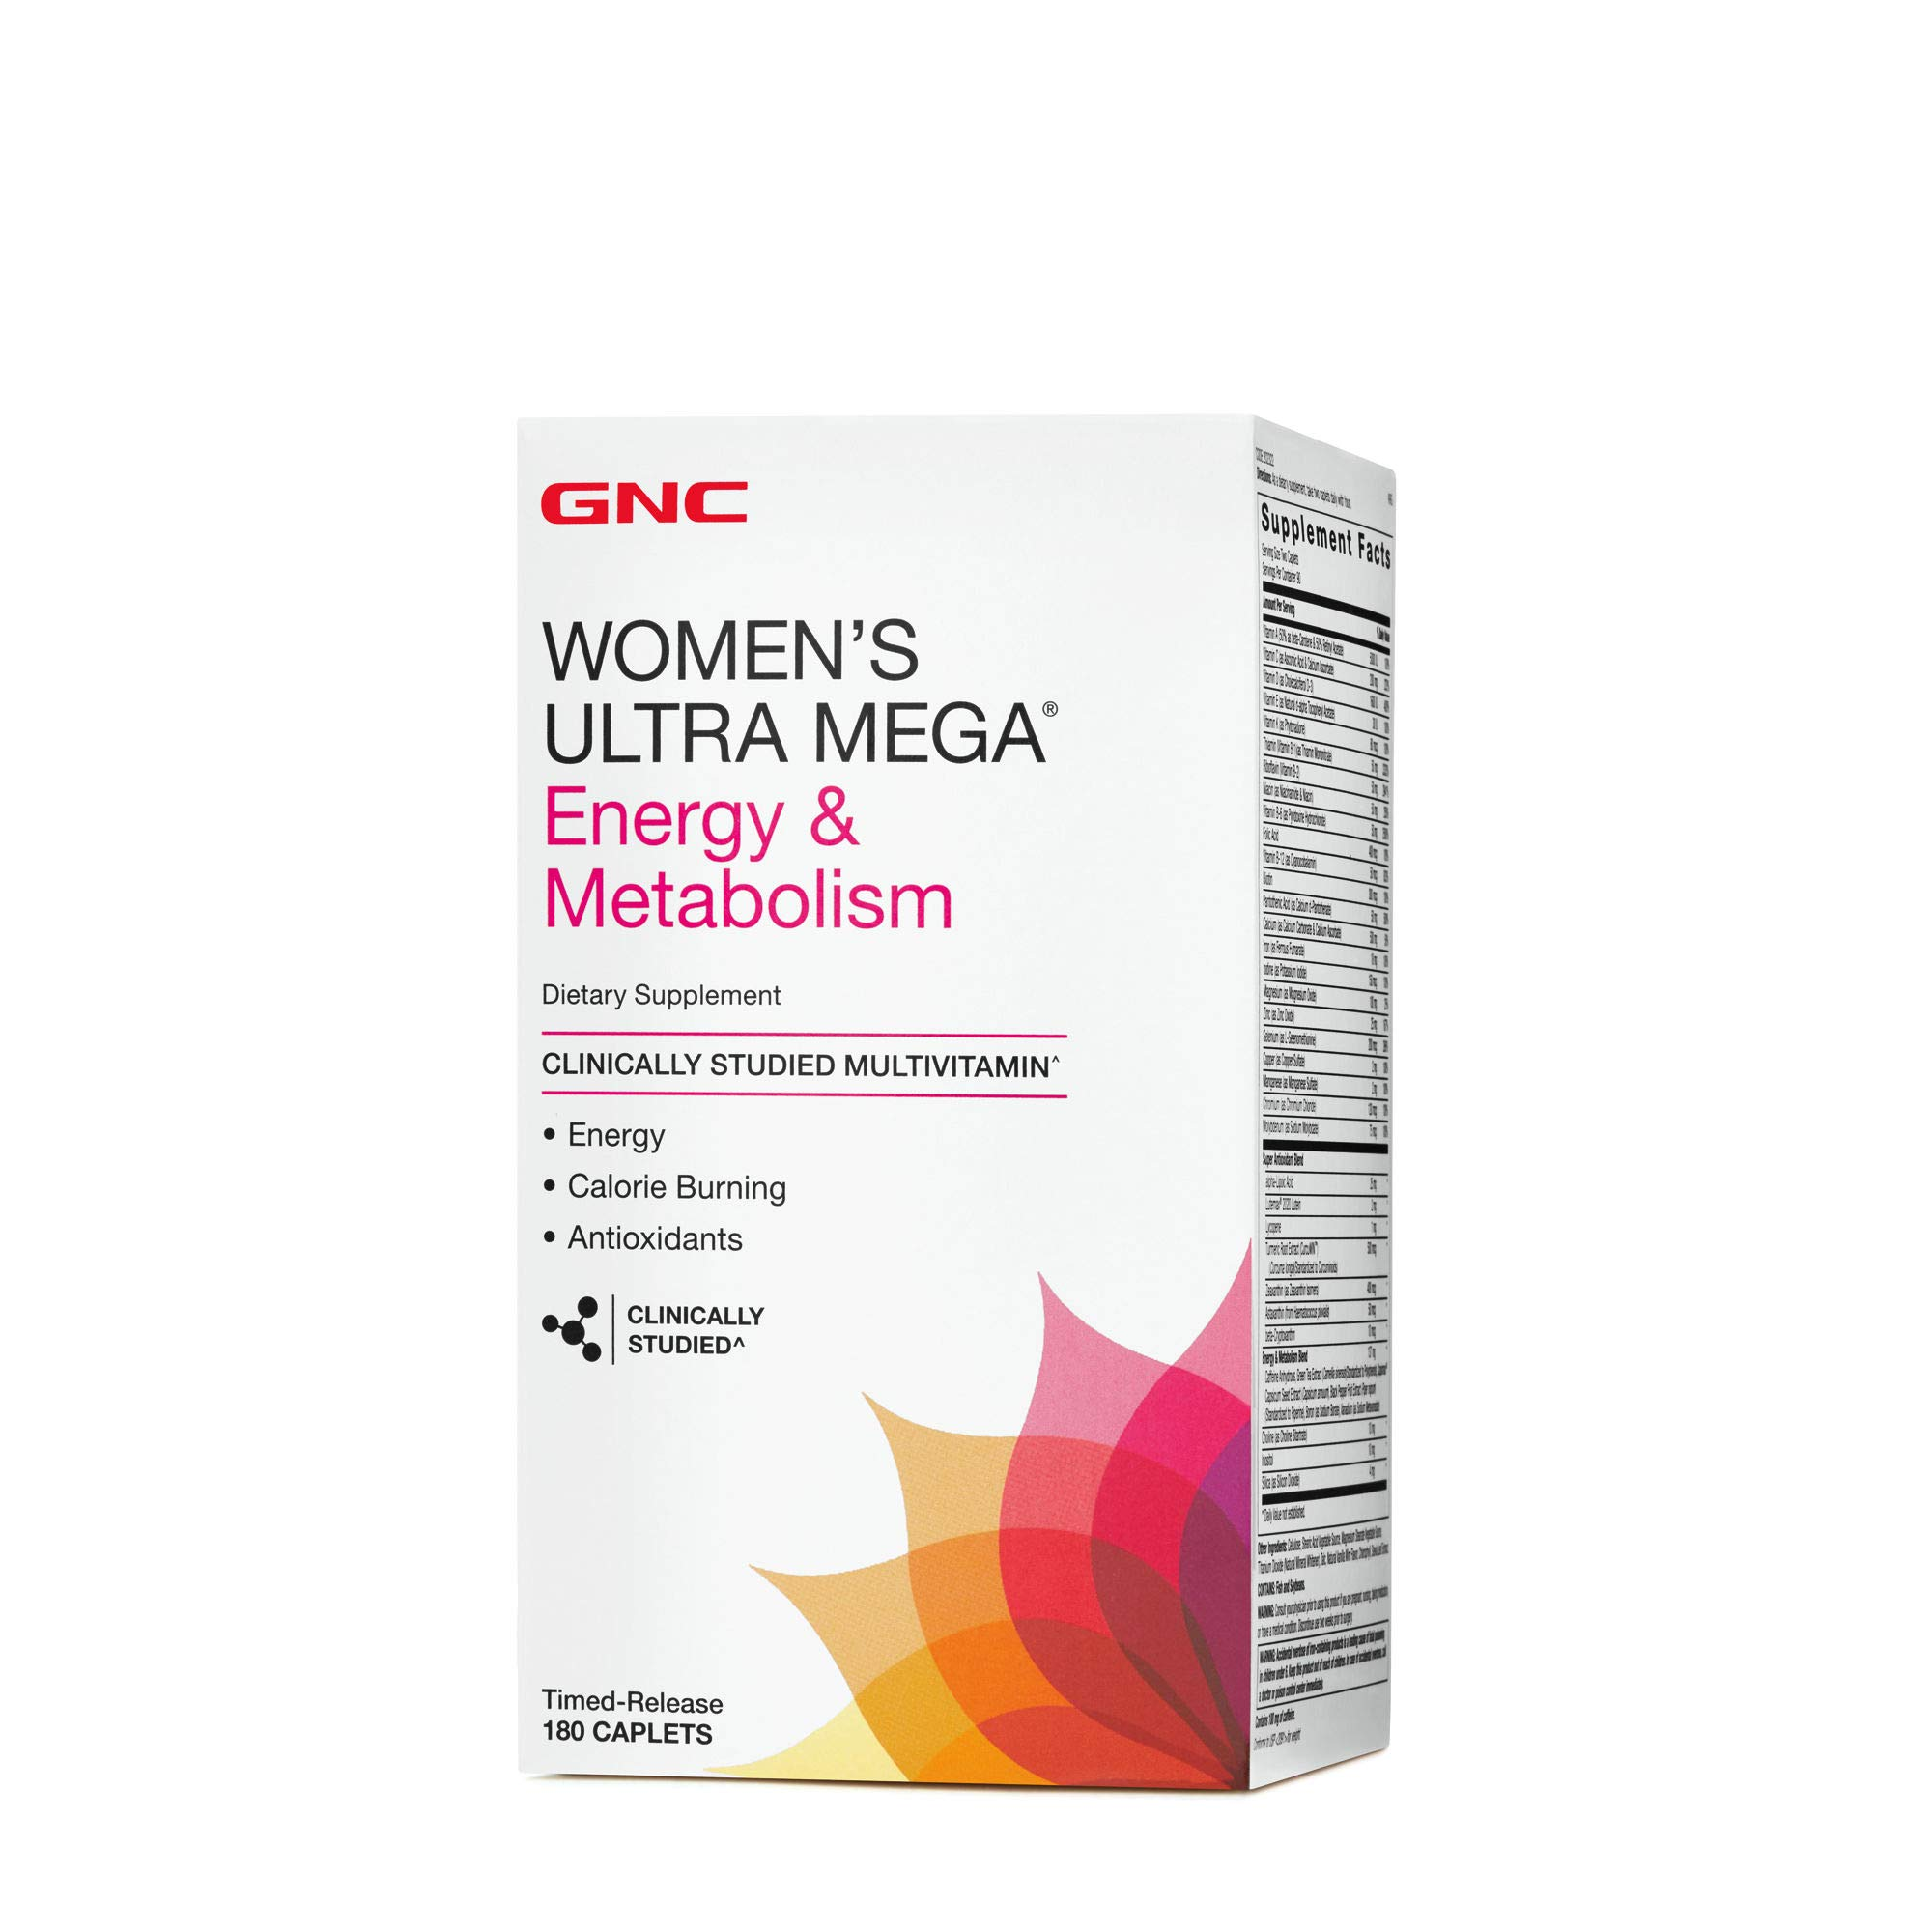 GNC Womens Ultra Mega Energy and Metabolism Multivitamin for Women, 180 Count, for Increased Energy, Metablism, and Calorie Burning